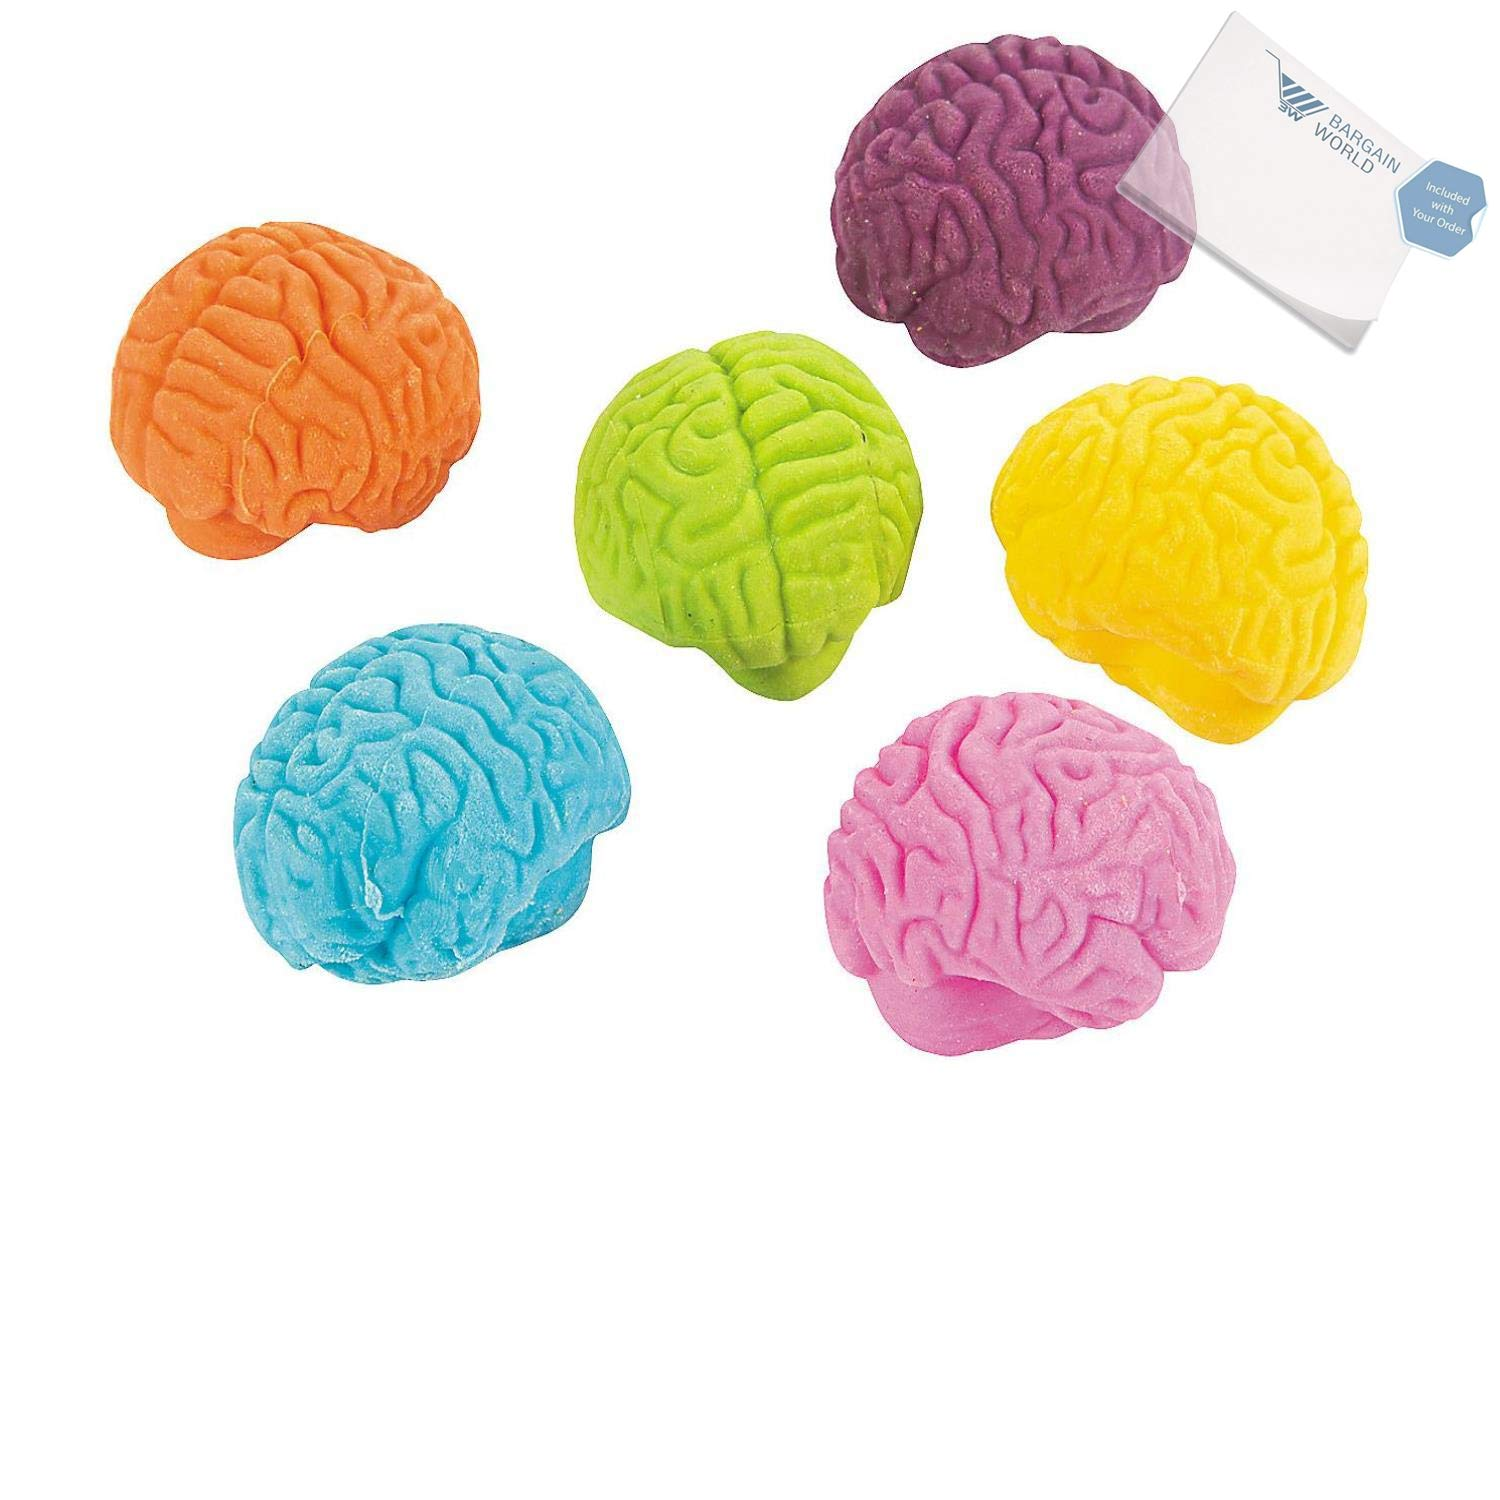 Rubber Brain-Shaped Erasers (With Sticky Notes)